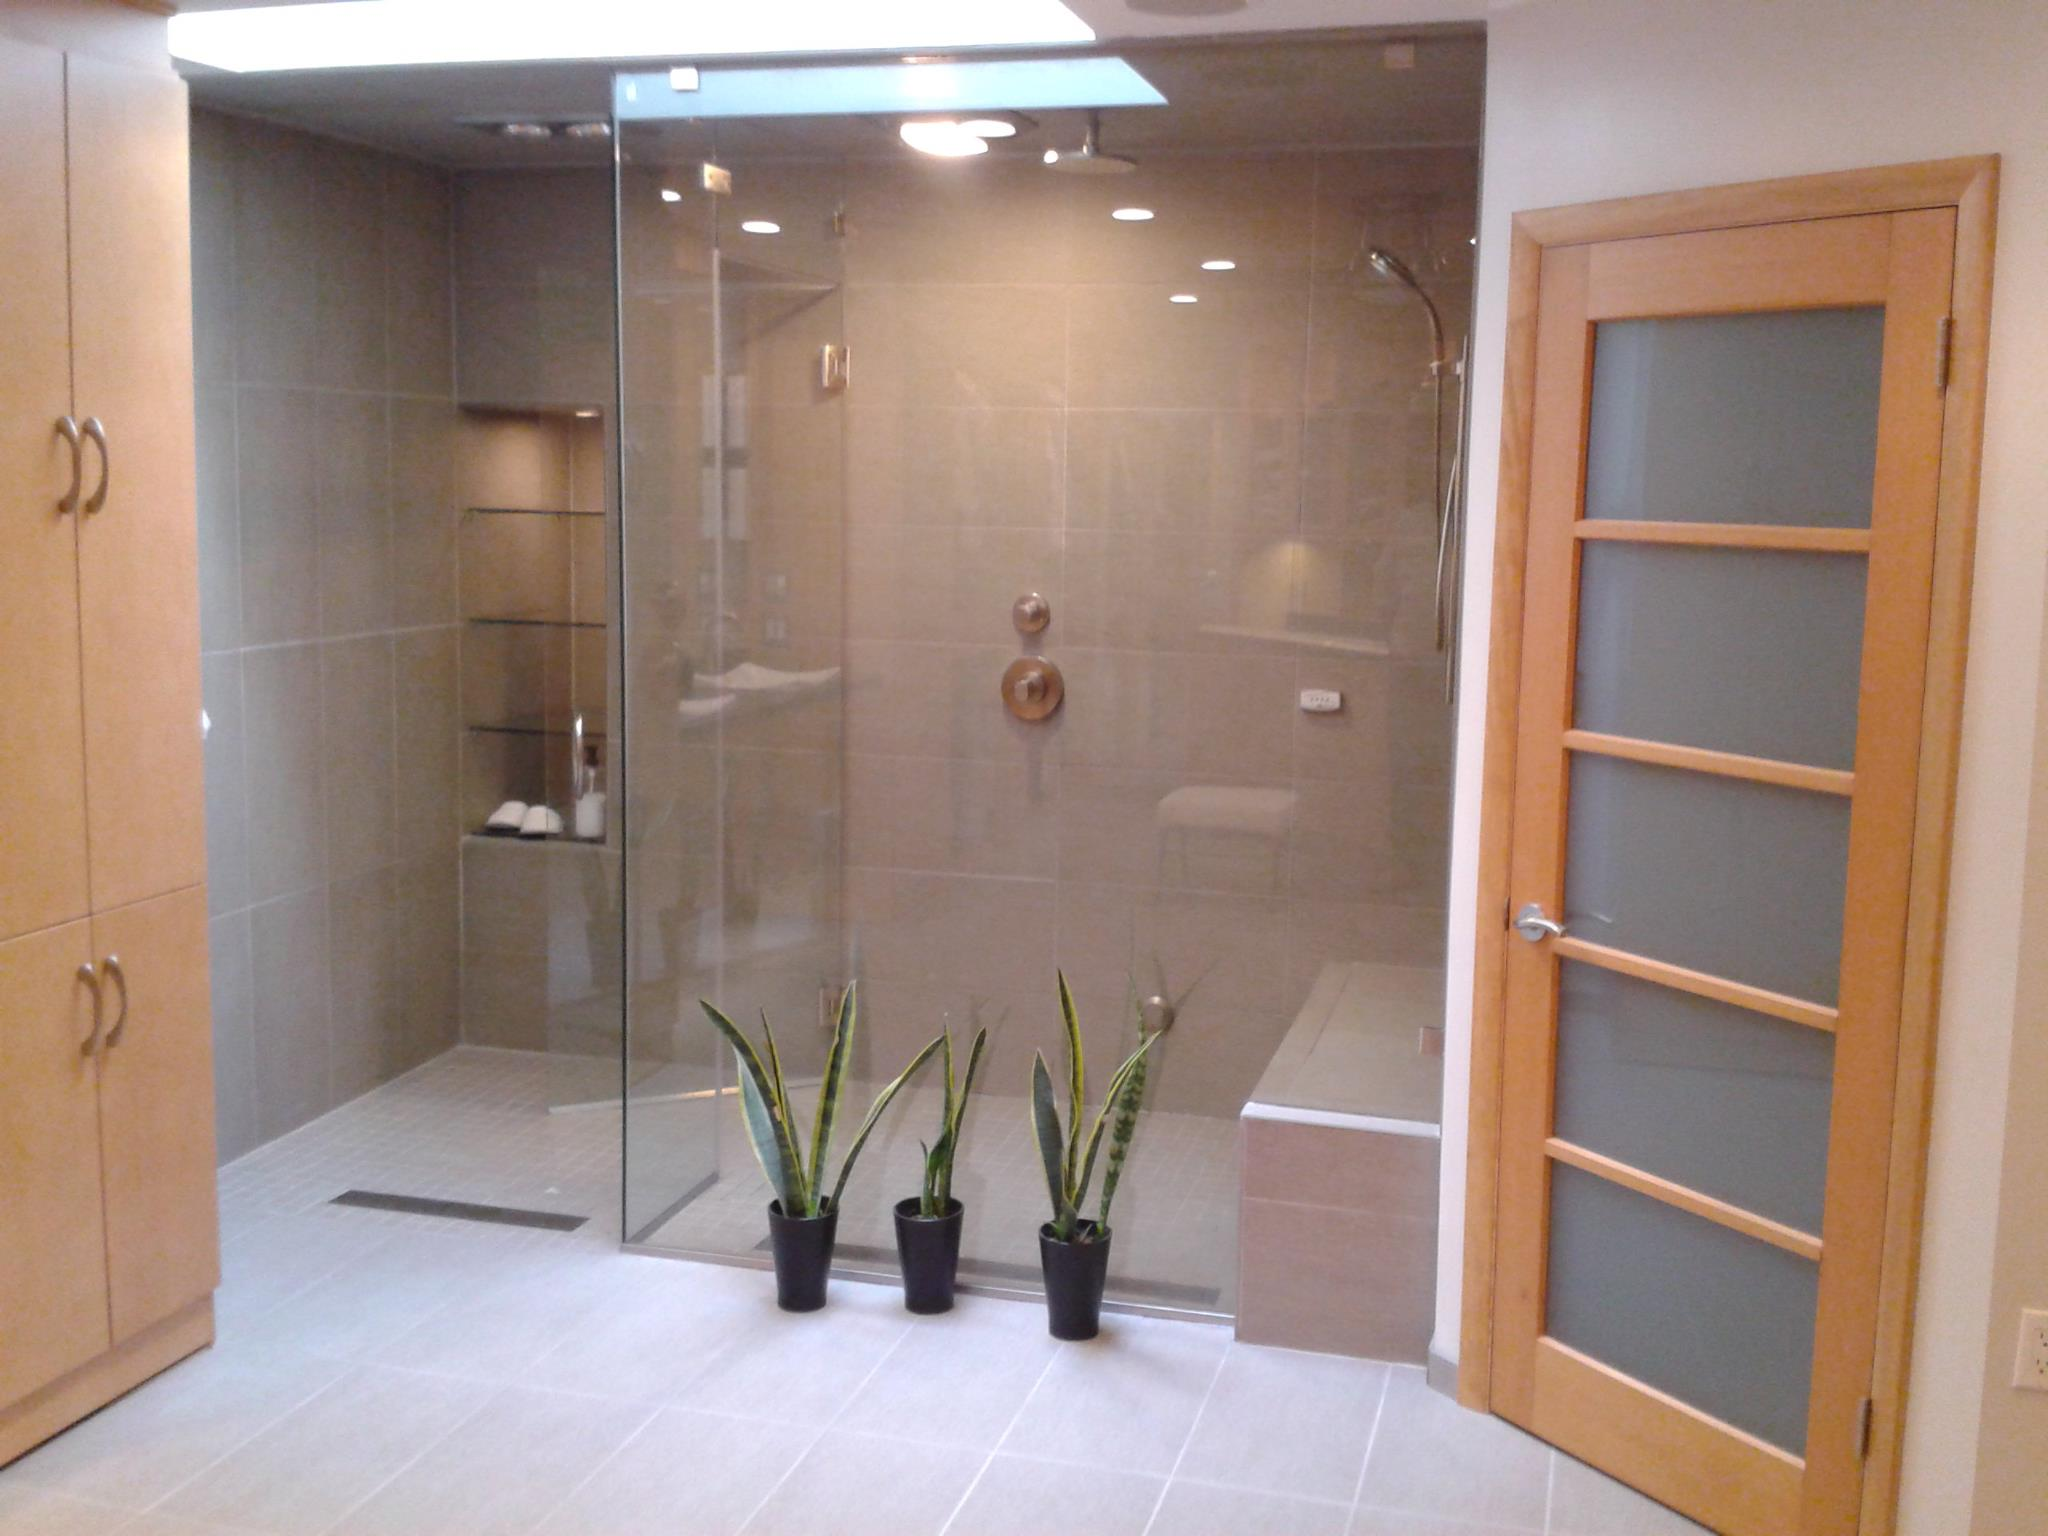 Bryn Mawr Glass W Chester Pike Havertown PA YPcom - Bathroom remodeling havertown pa